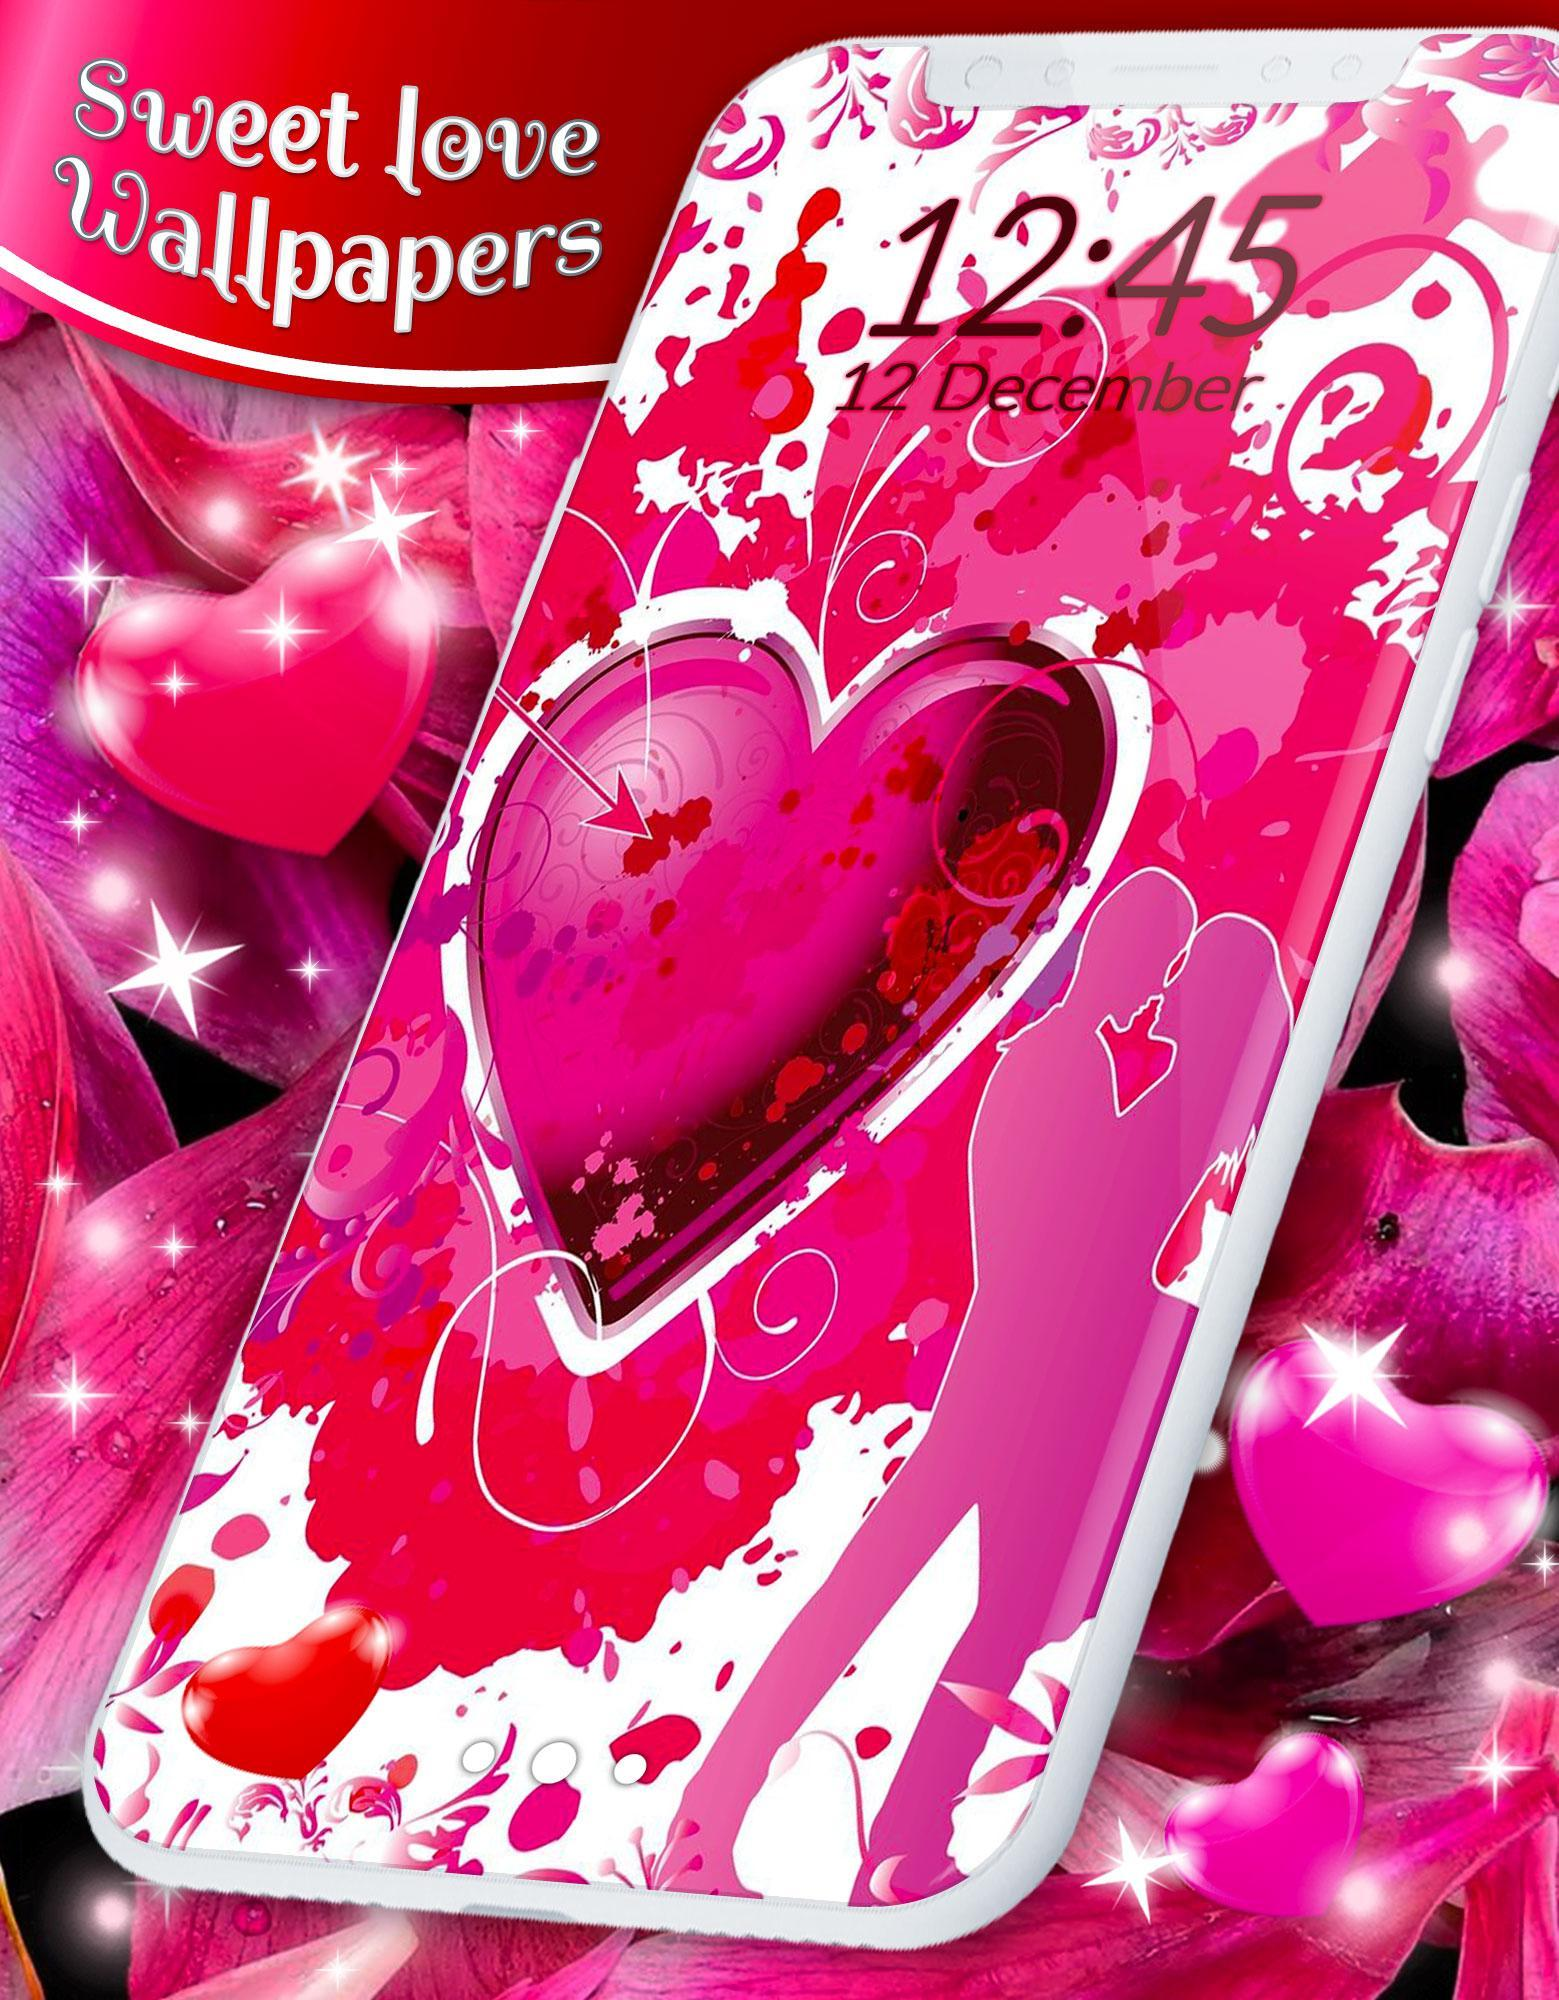 Sweet Love Live Wallpaper For Android Apk Download